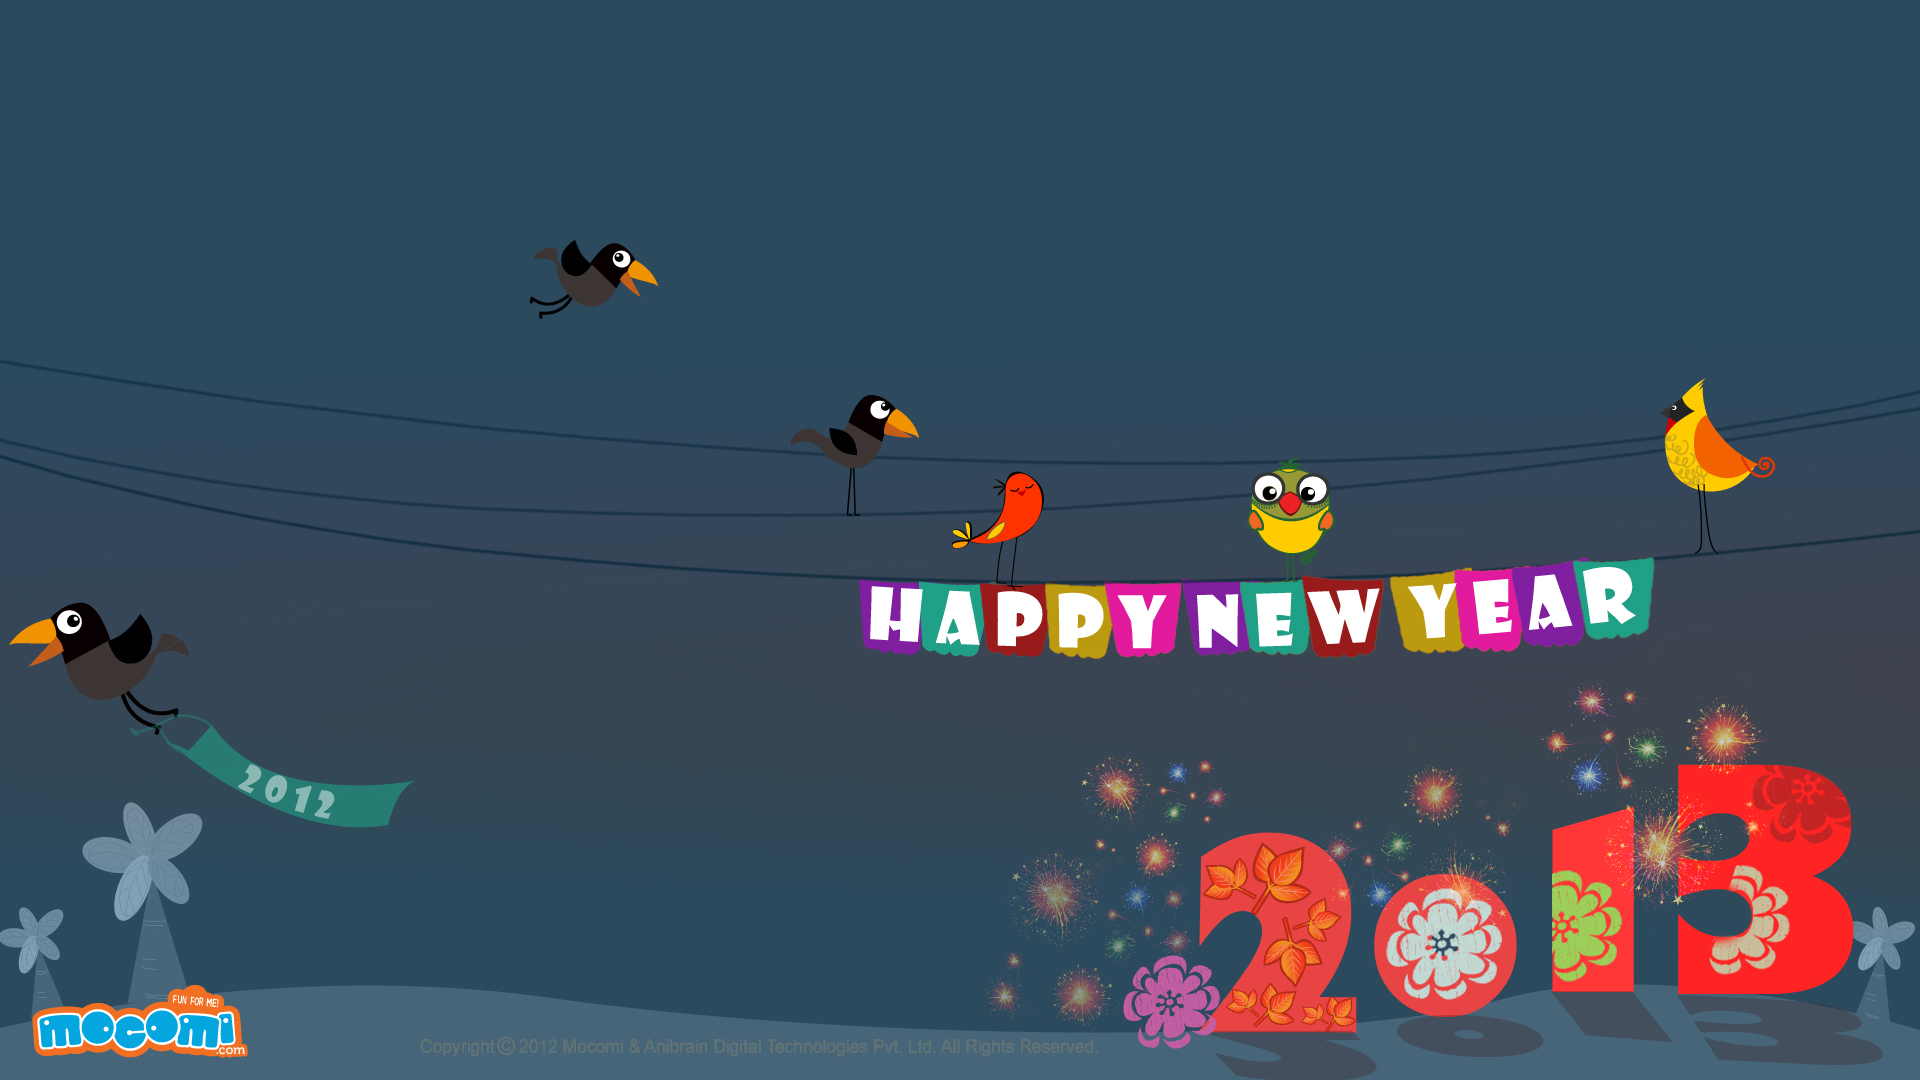 Happy New Year 2013 – 05